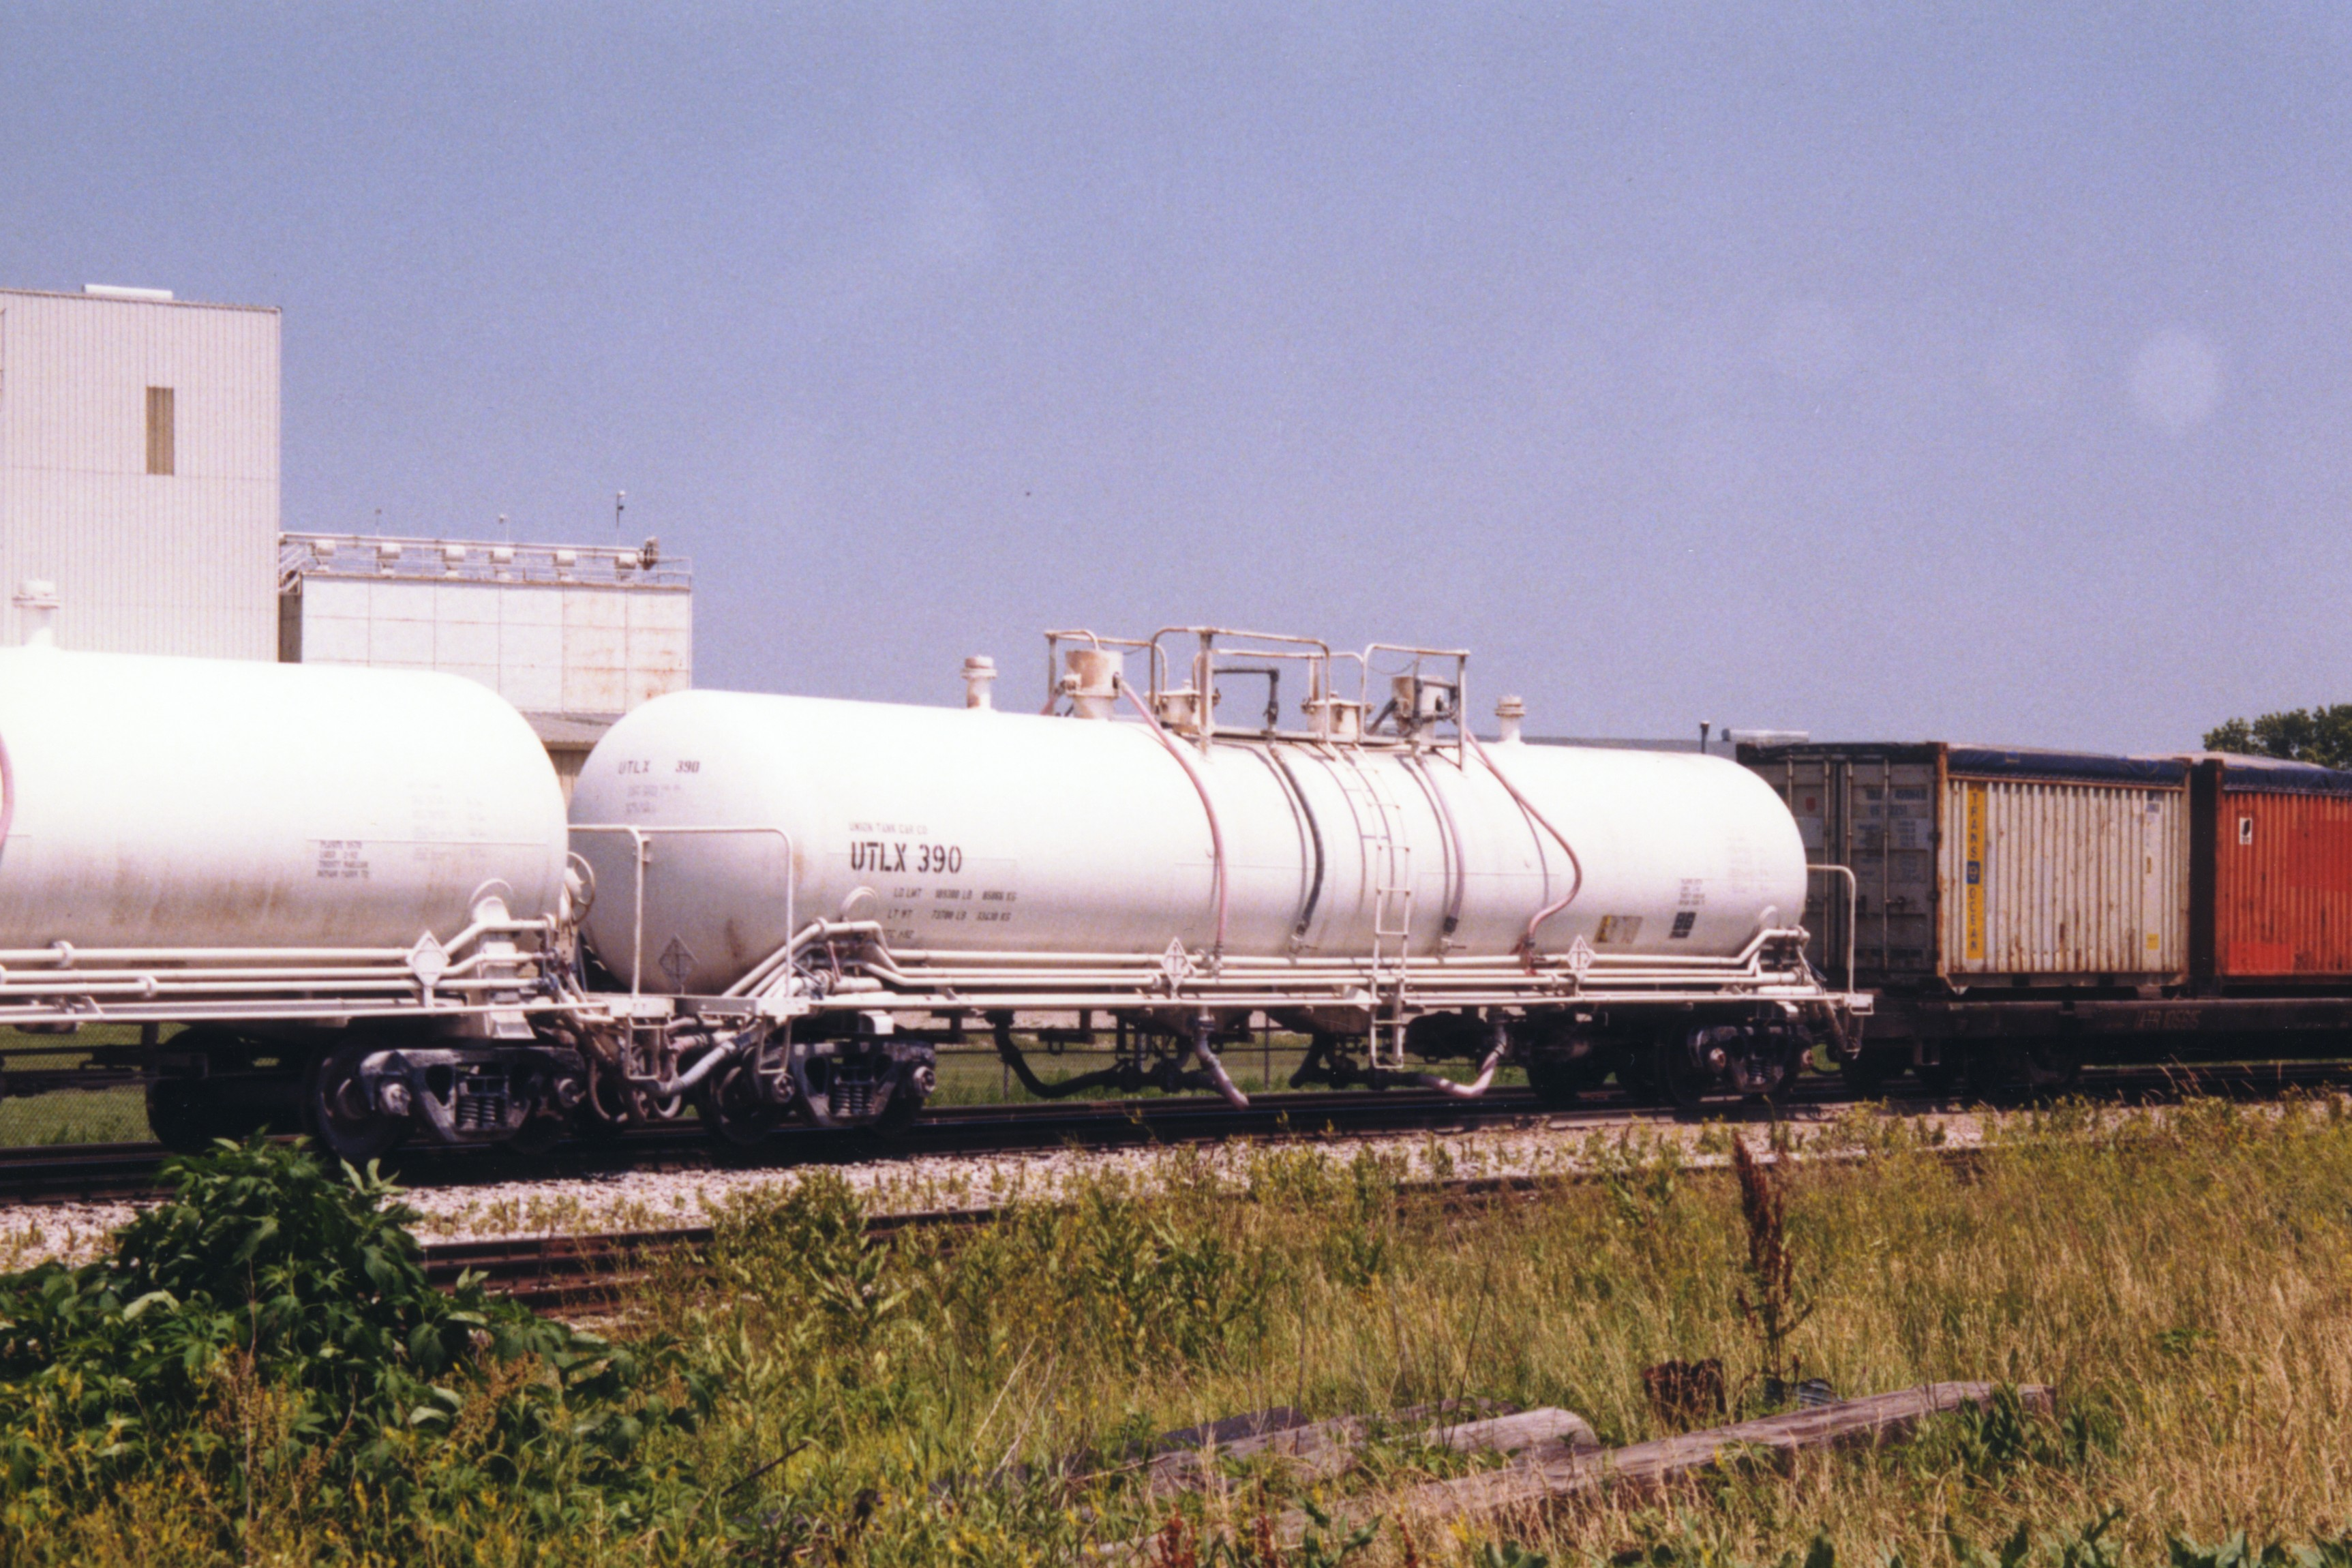 UTLX-390-altoona ia-[20-jun-1998]-001